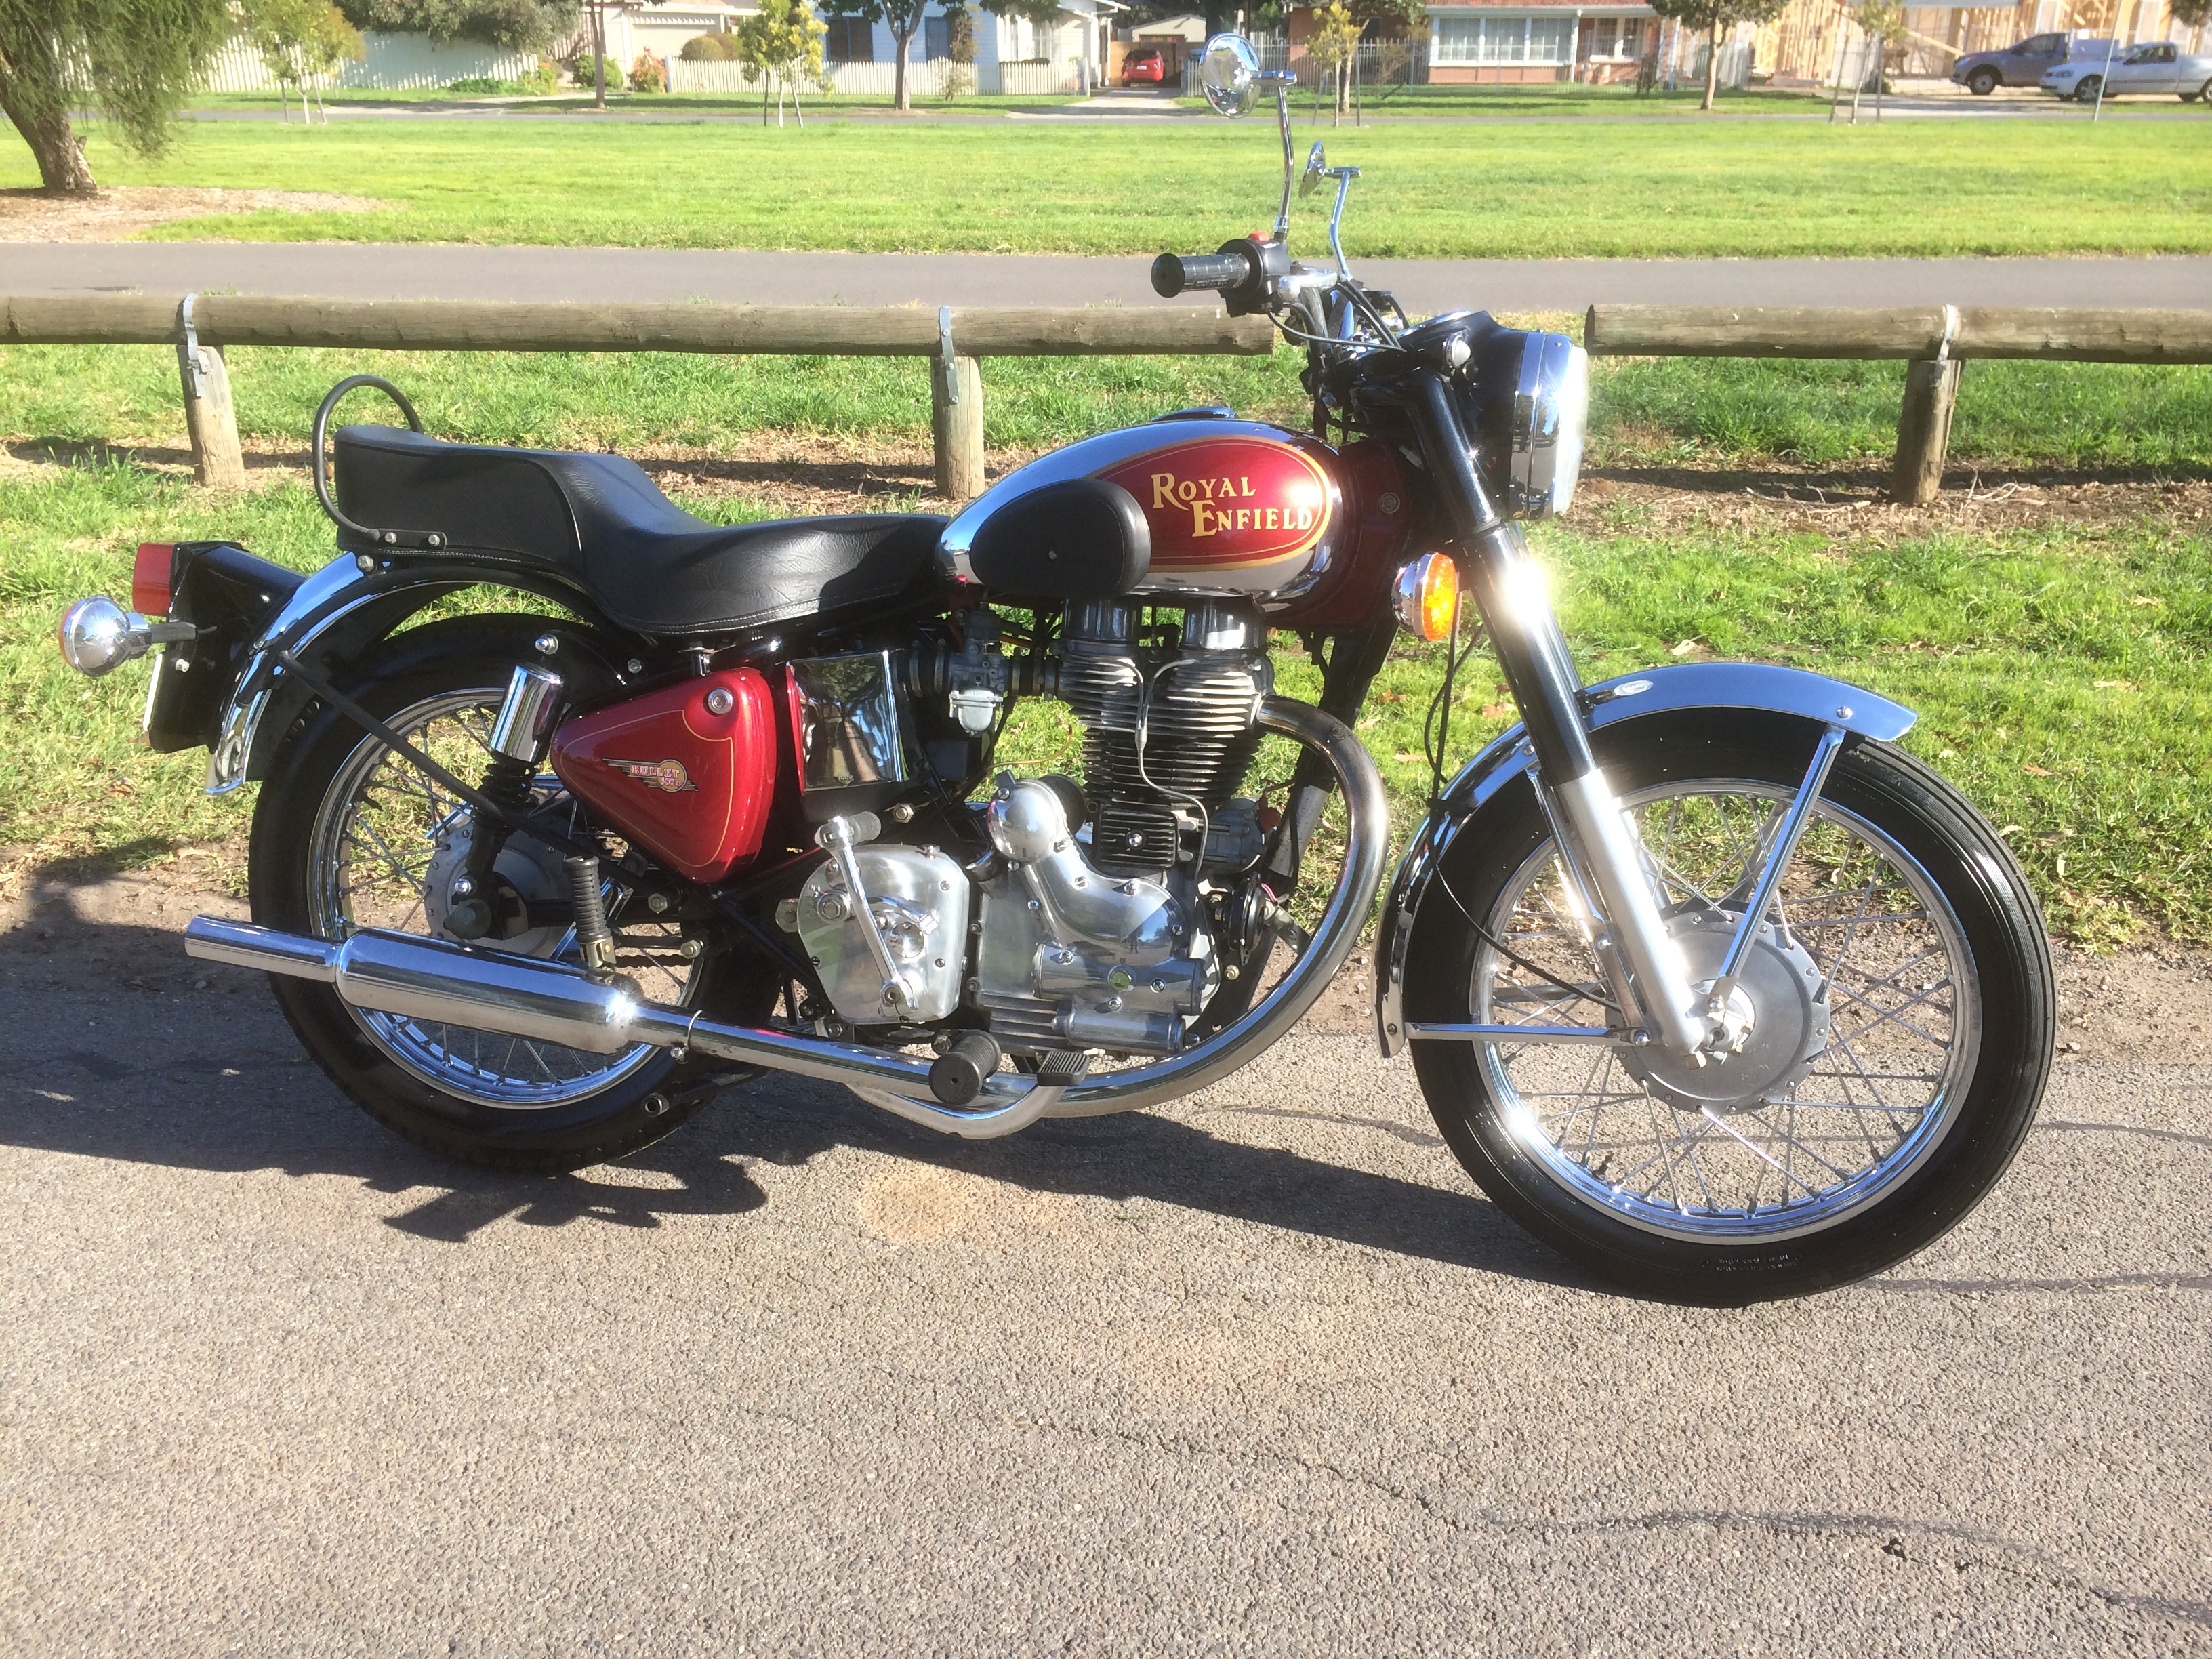 Royal Enfield Bullet 350 Classic 2007 images #123967